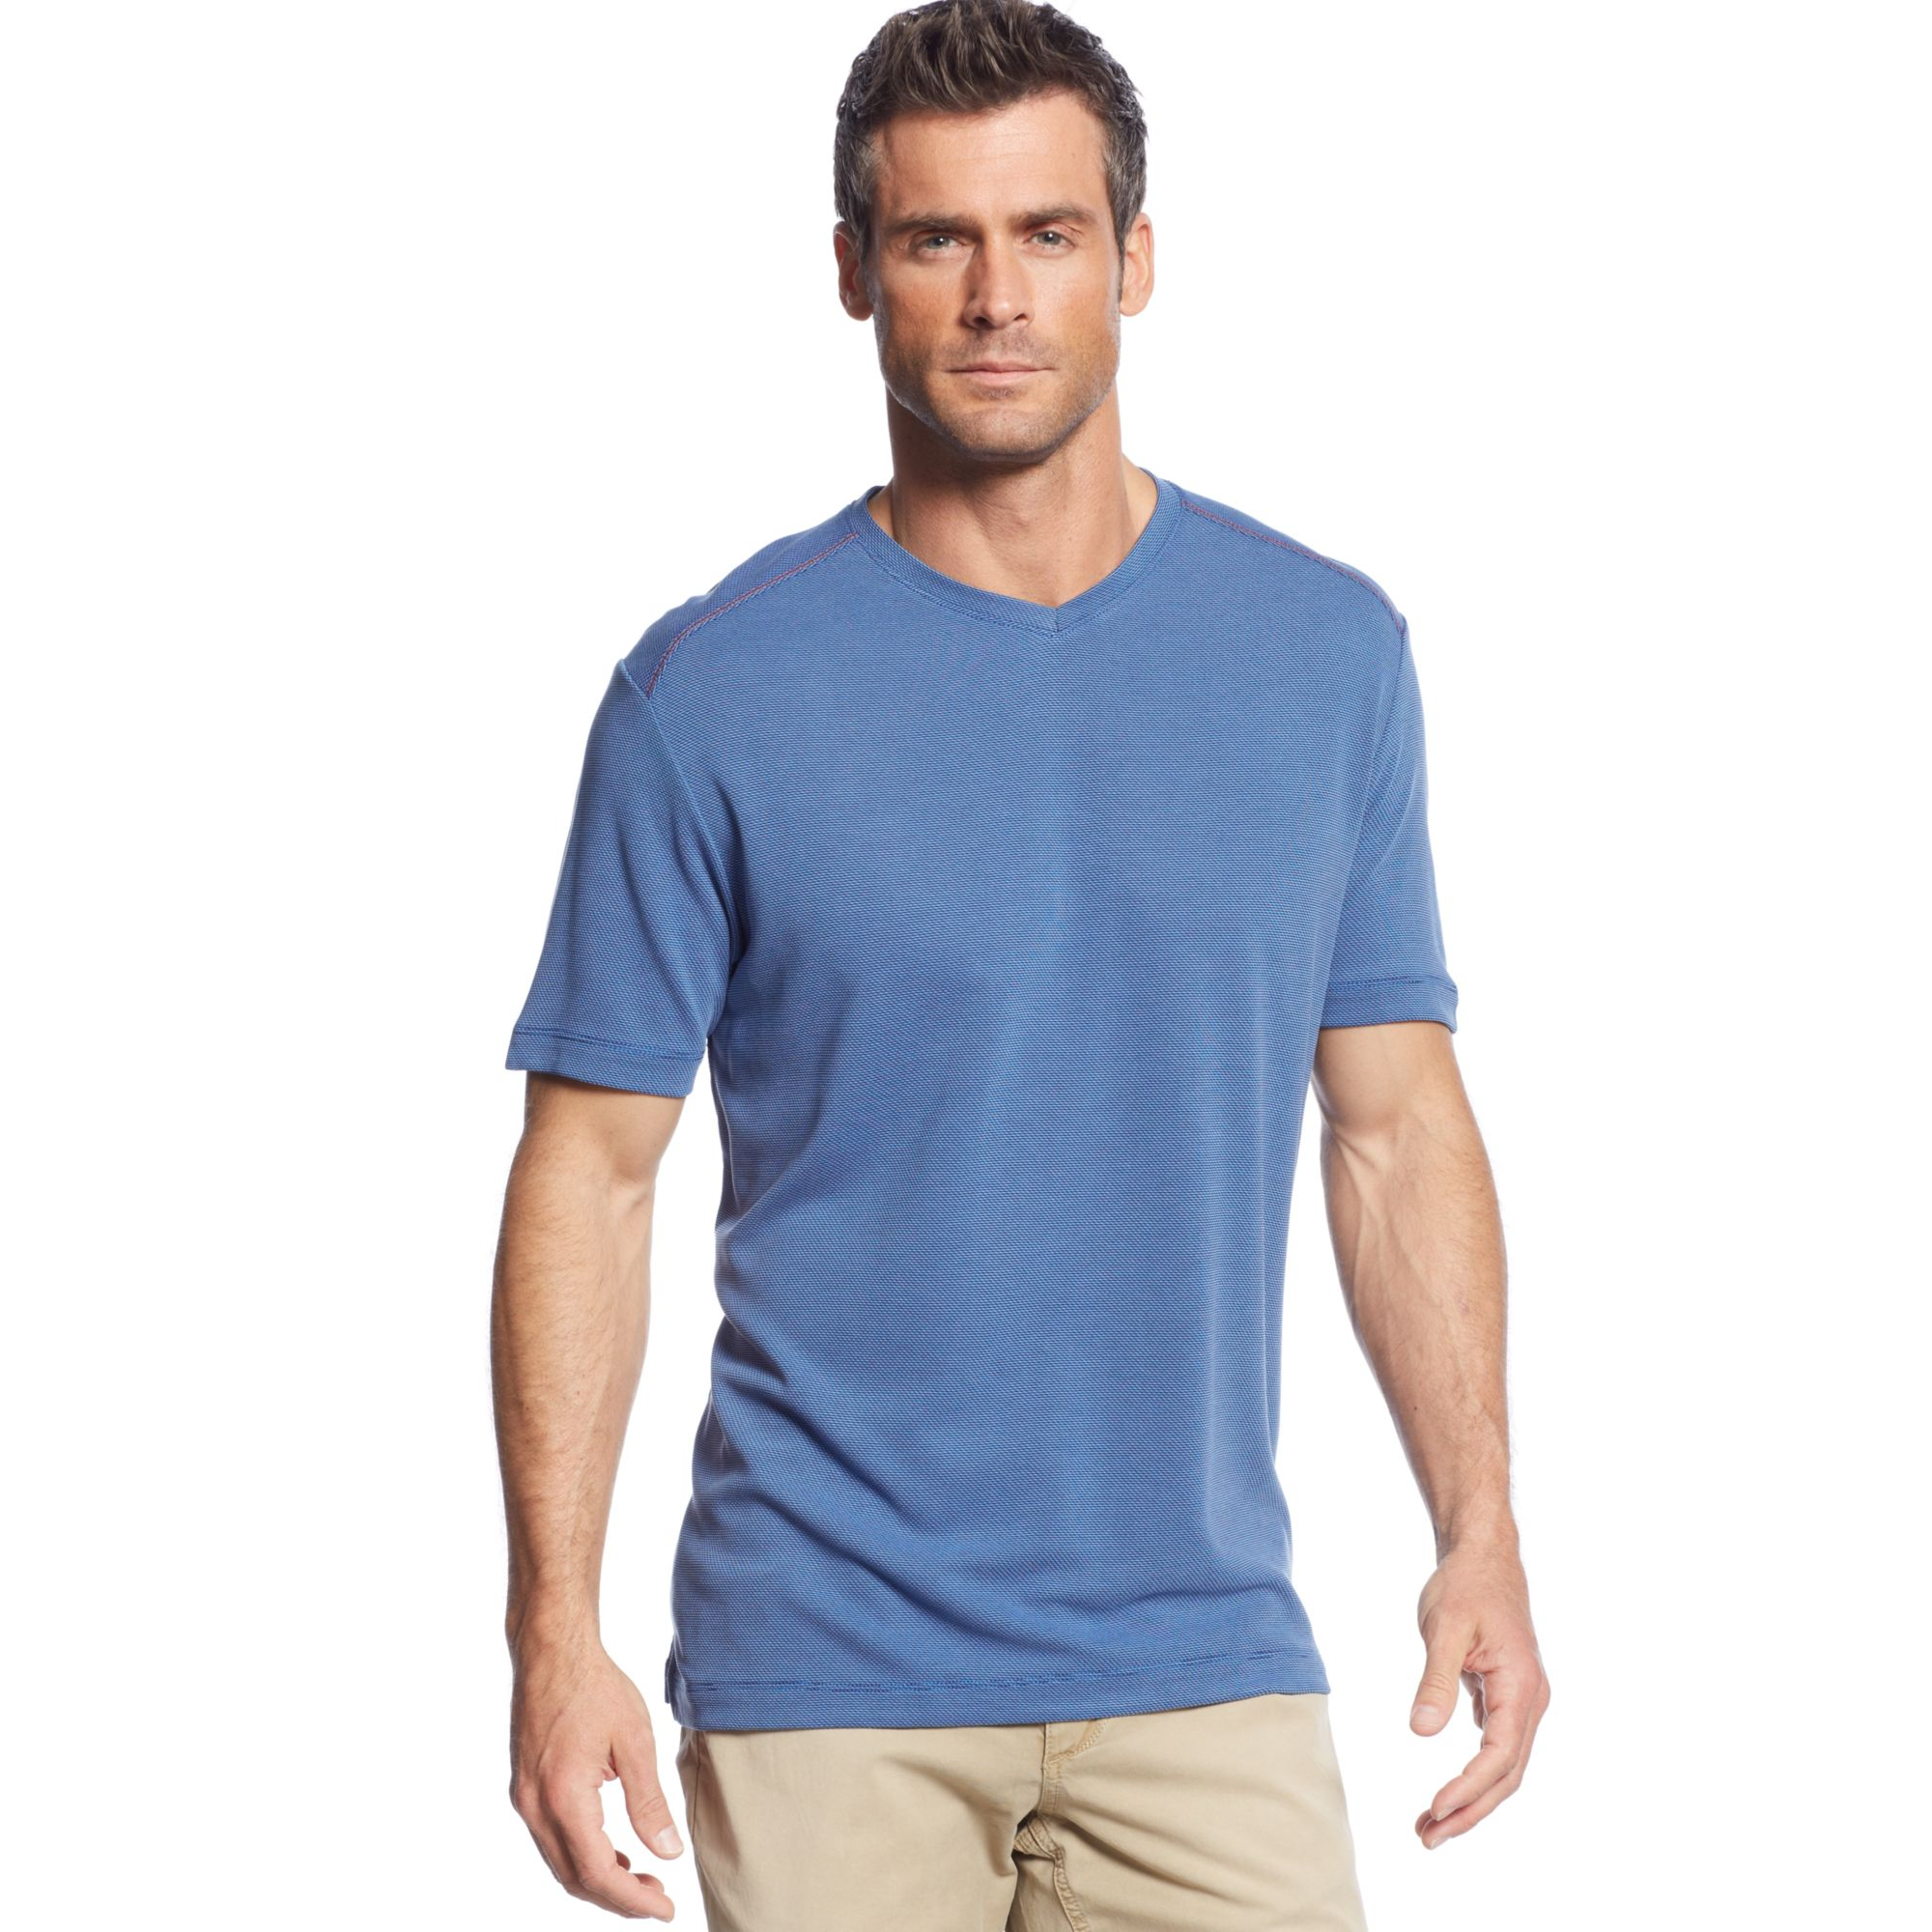 Tommy bahama pebble shore vneck tshirt in blue for men for Tommy bahama christmas shirt 2014